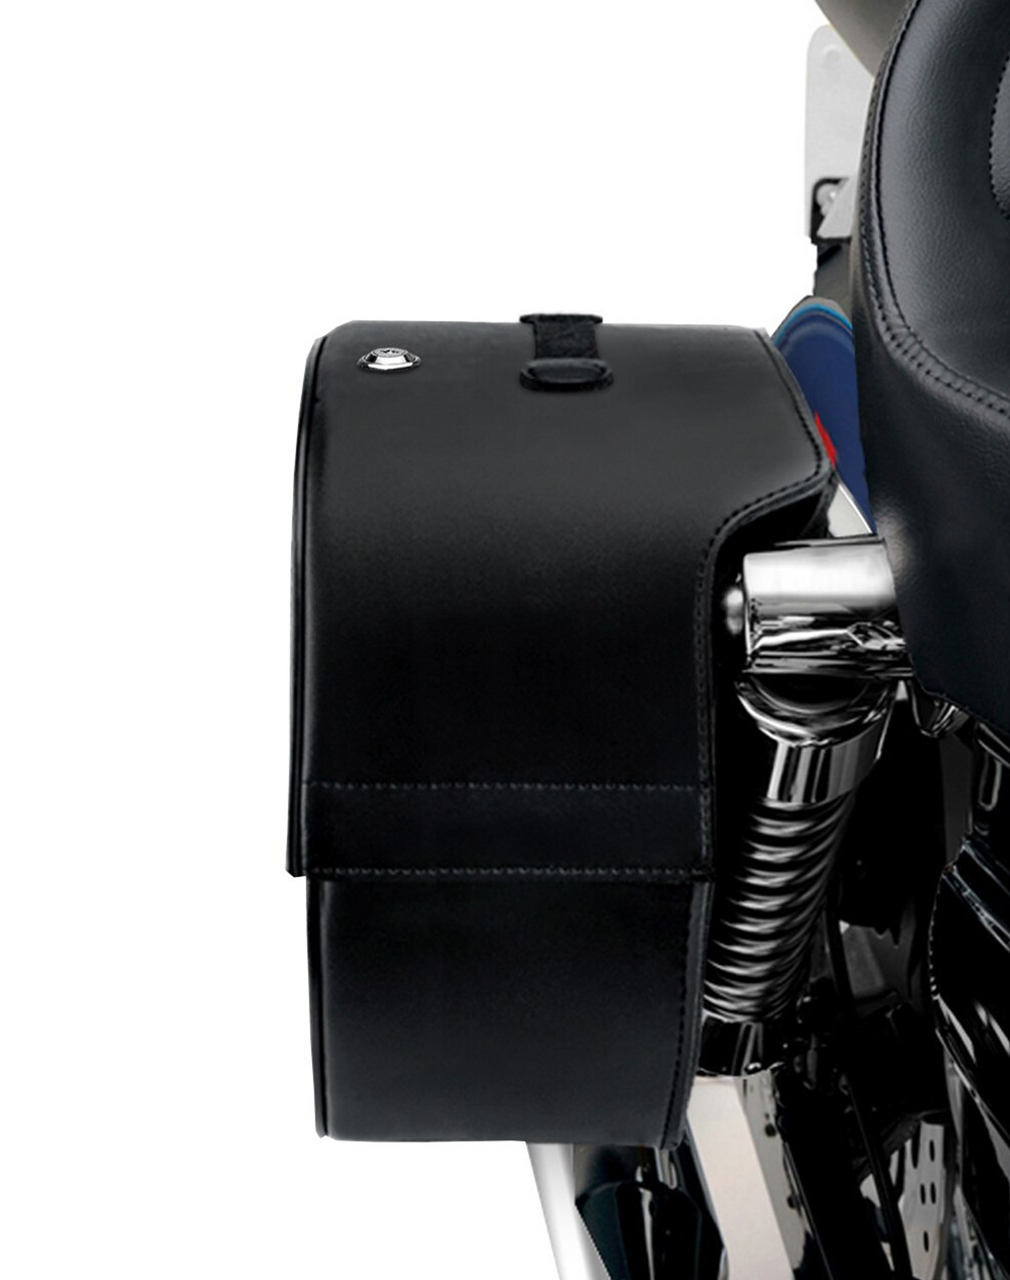 Indian Scout Sixty Shock Cutout Armor Motorcycle Saddlebags Shock Cutout View